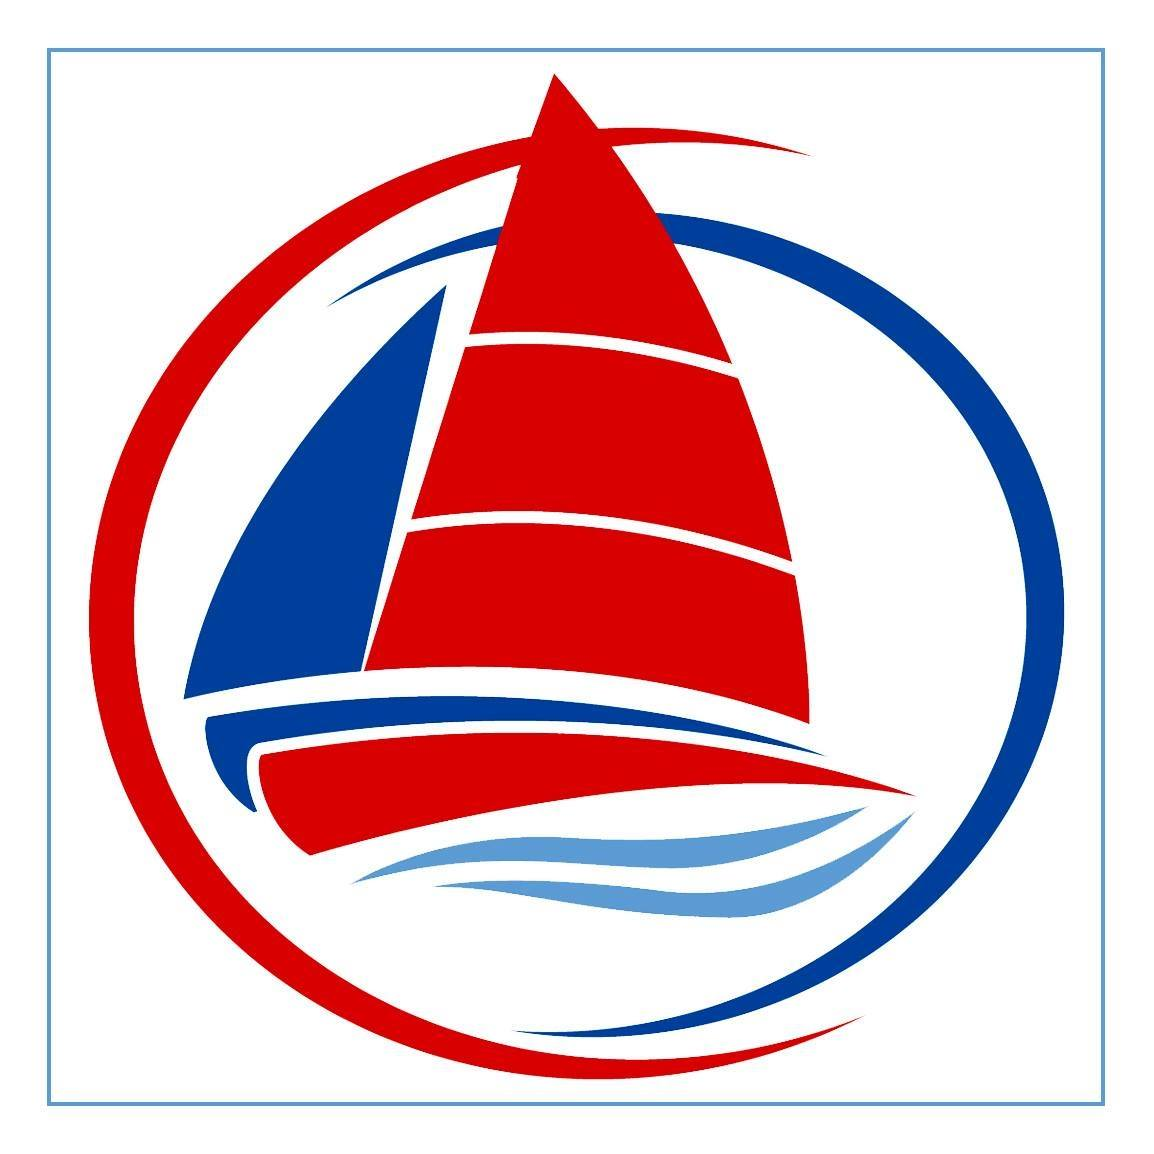 The Multihull Companylogo